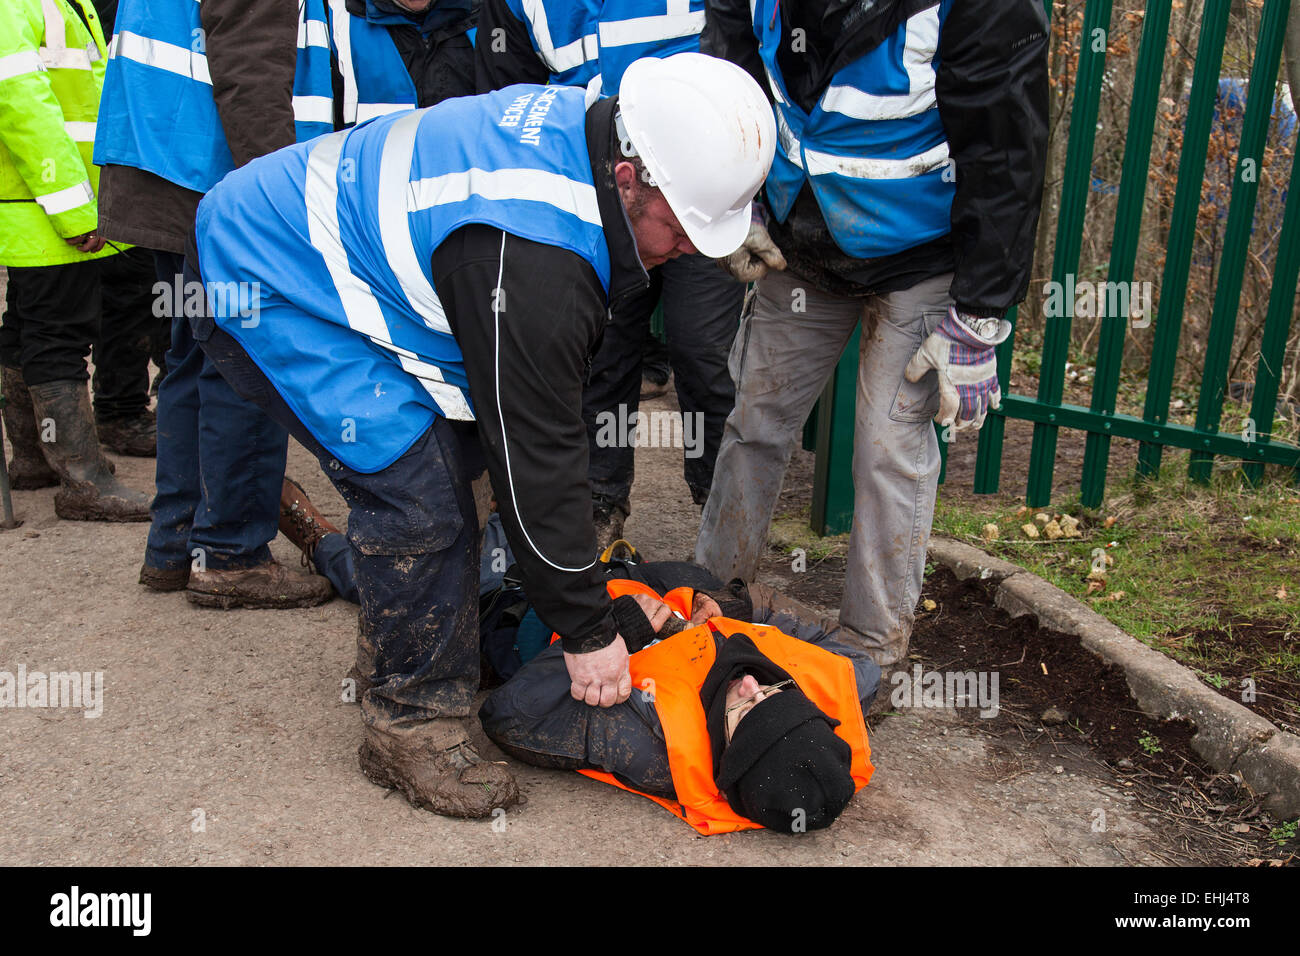 Bristol, UK. 14th Mar, 2015. Specialist eviction teams and enforcement officers have evicted more protesters from - Stock Image